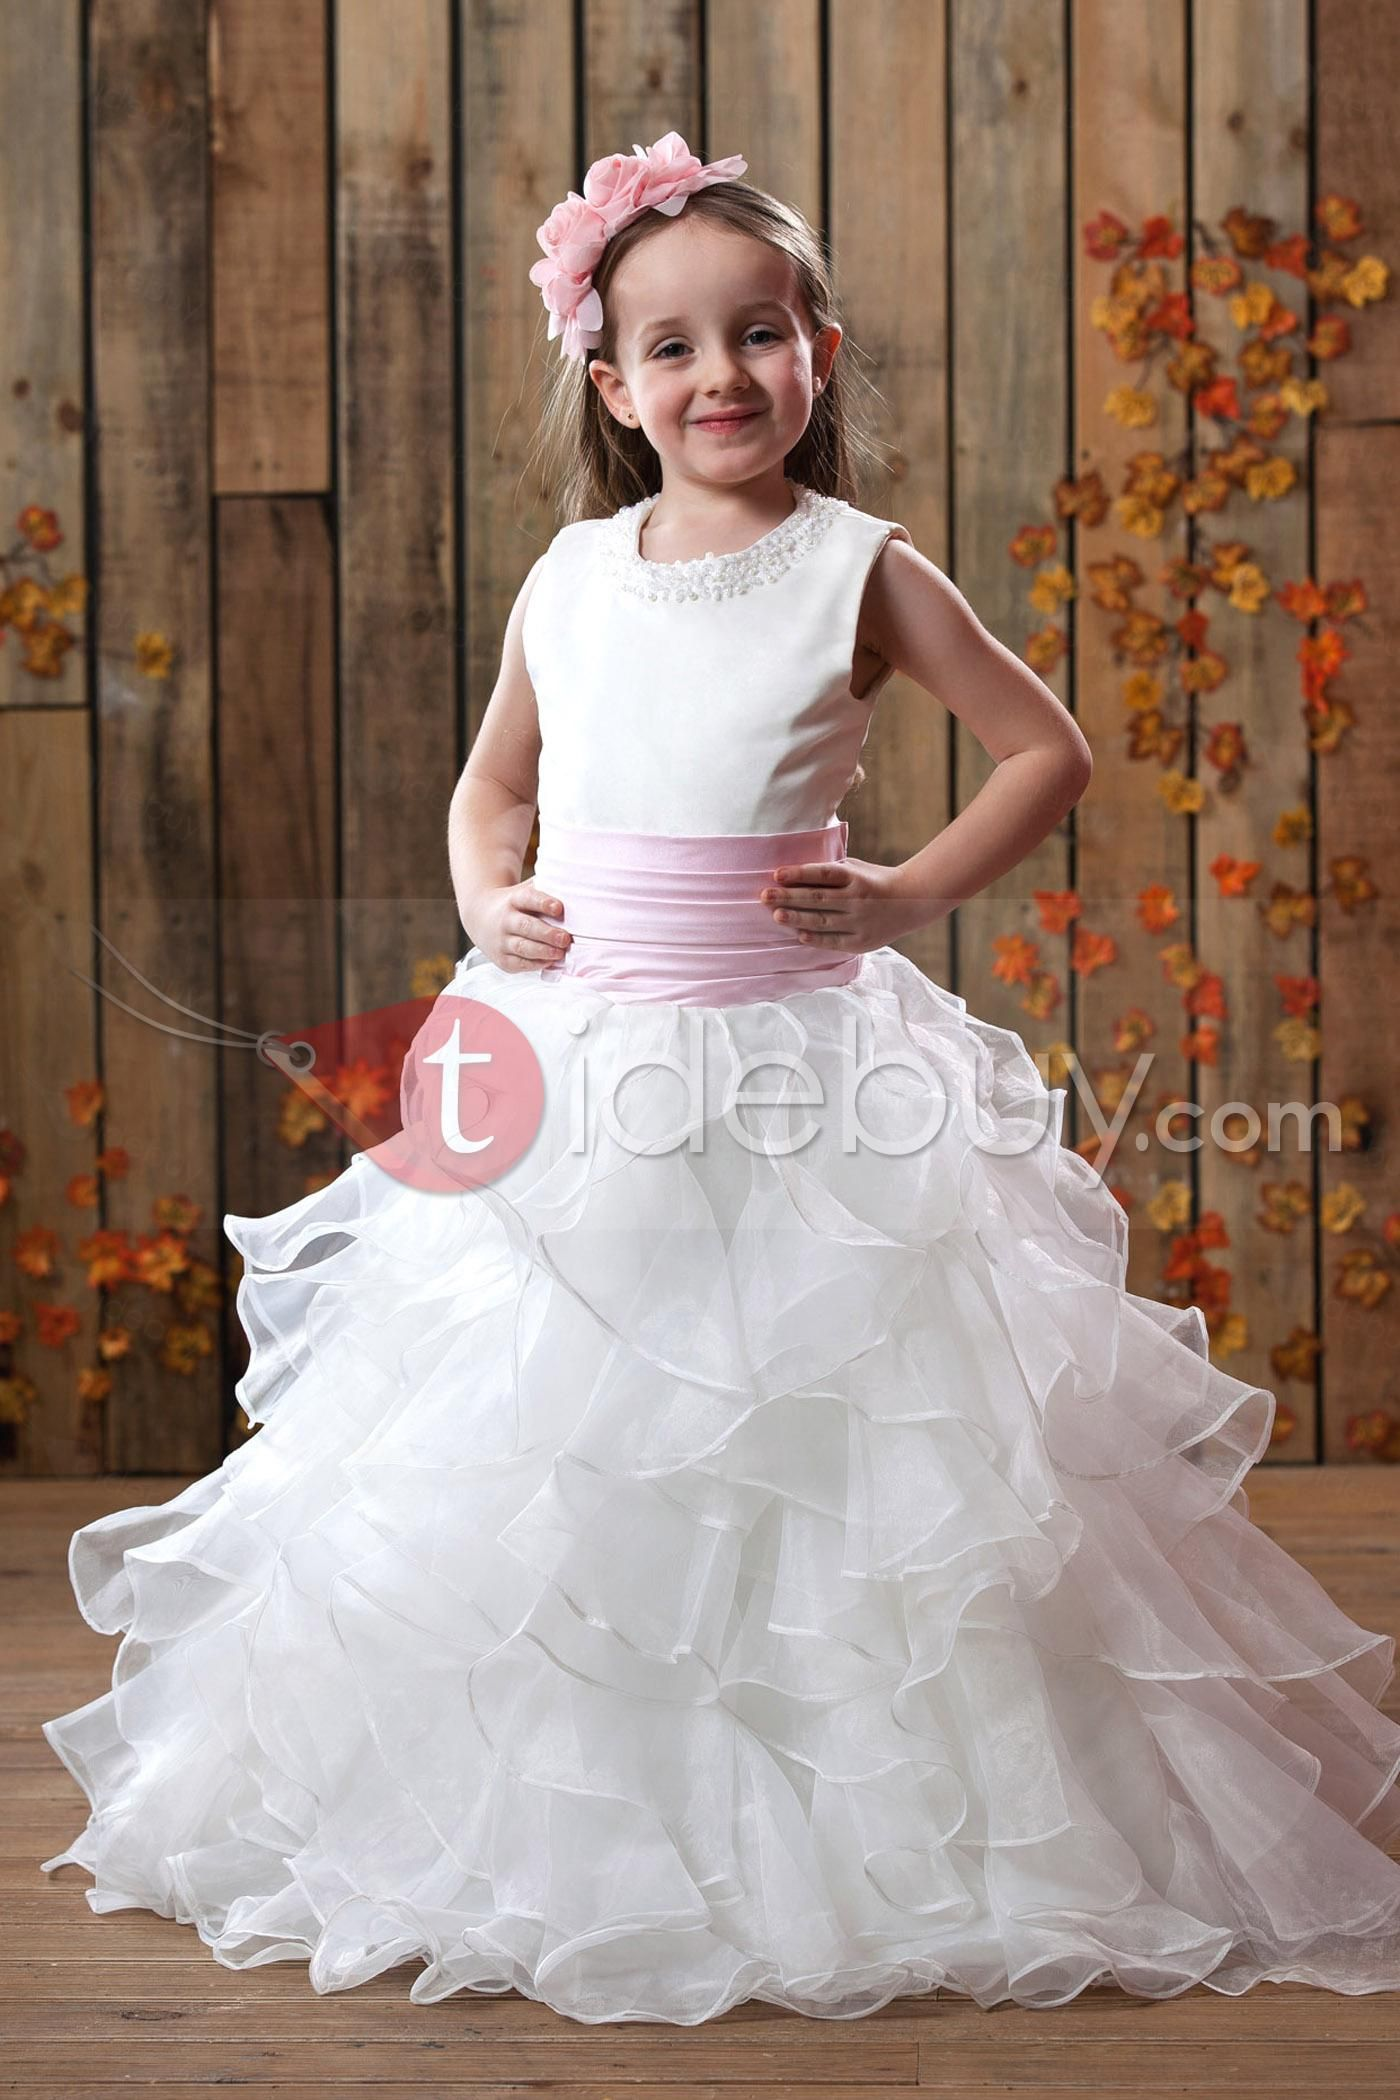 Girls wedding dress  Glamorous Aline Anklelength Pleats Sash Flower Girl Dress  Ankle